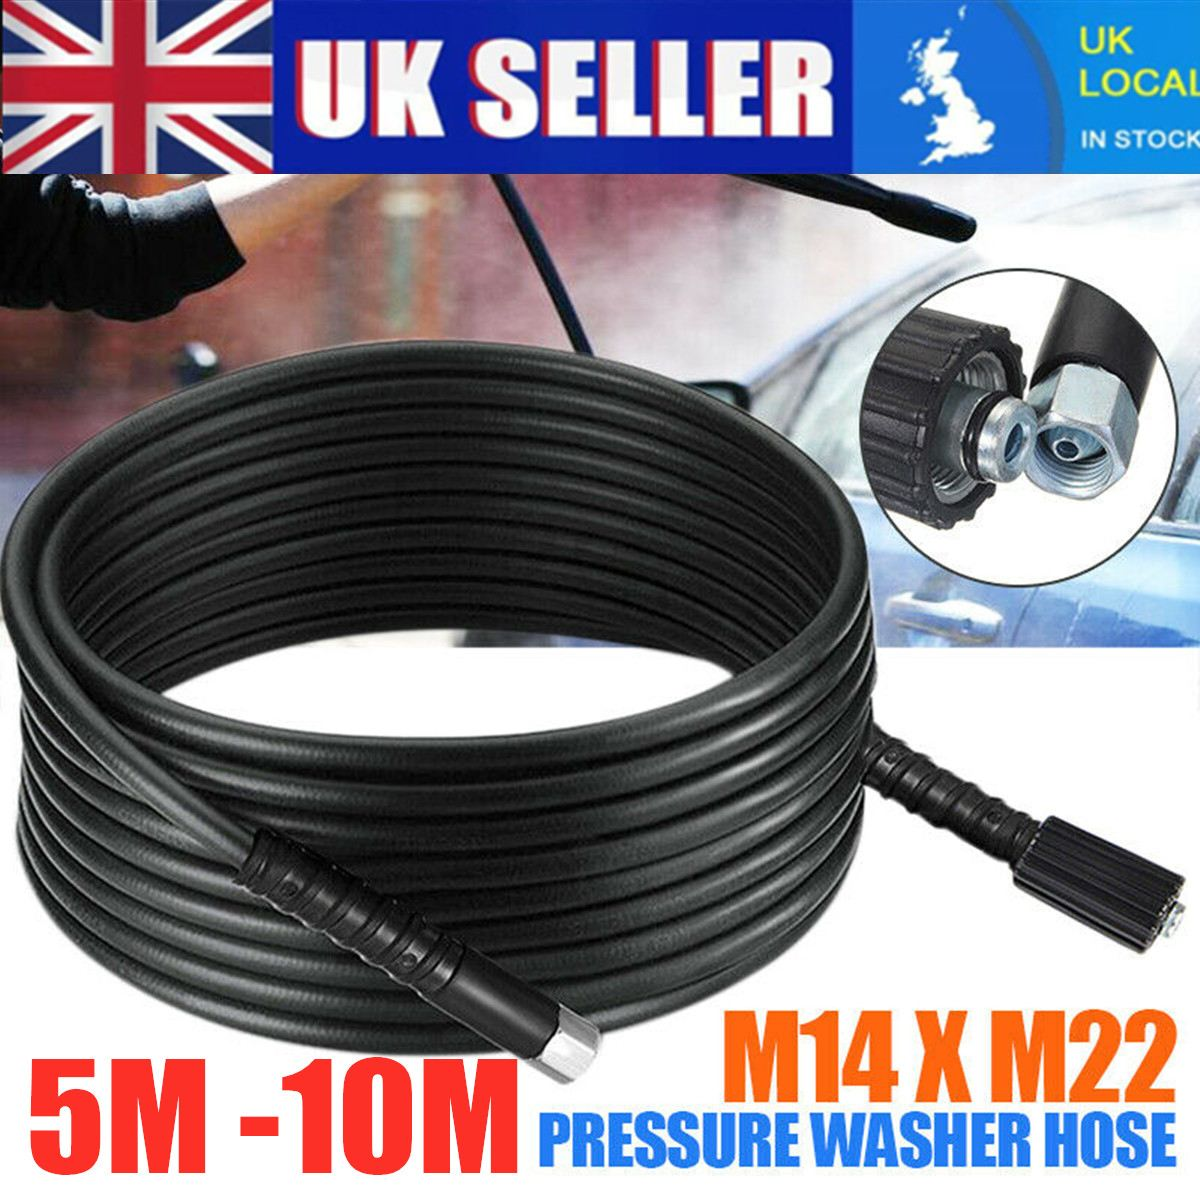 10 meters 5800PSI High Pressure Washer Hose Cord Pipe Car Cleaner Water Cleaning Extension Hose Water Hose M14 M22 Connector